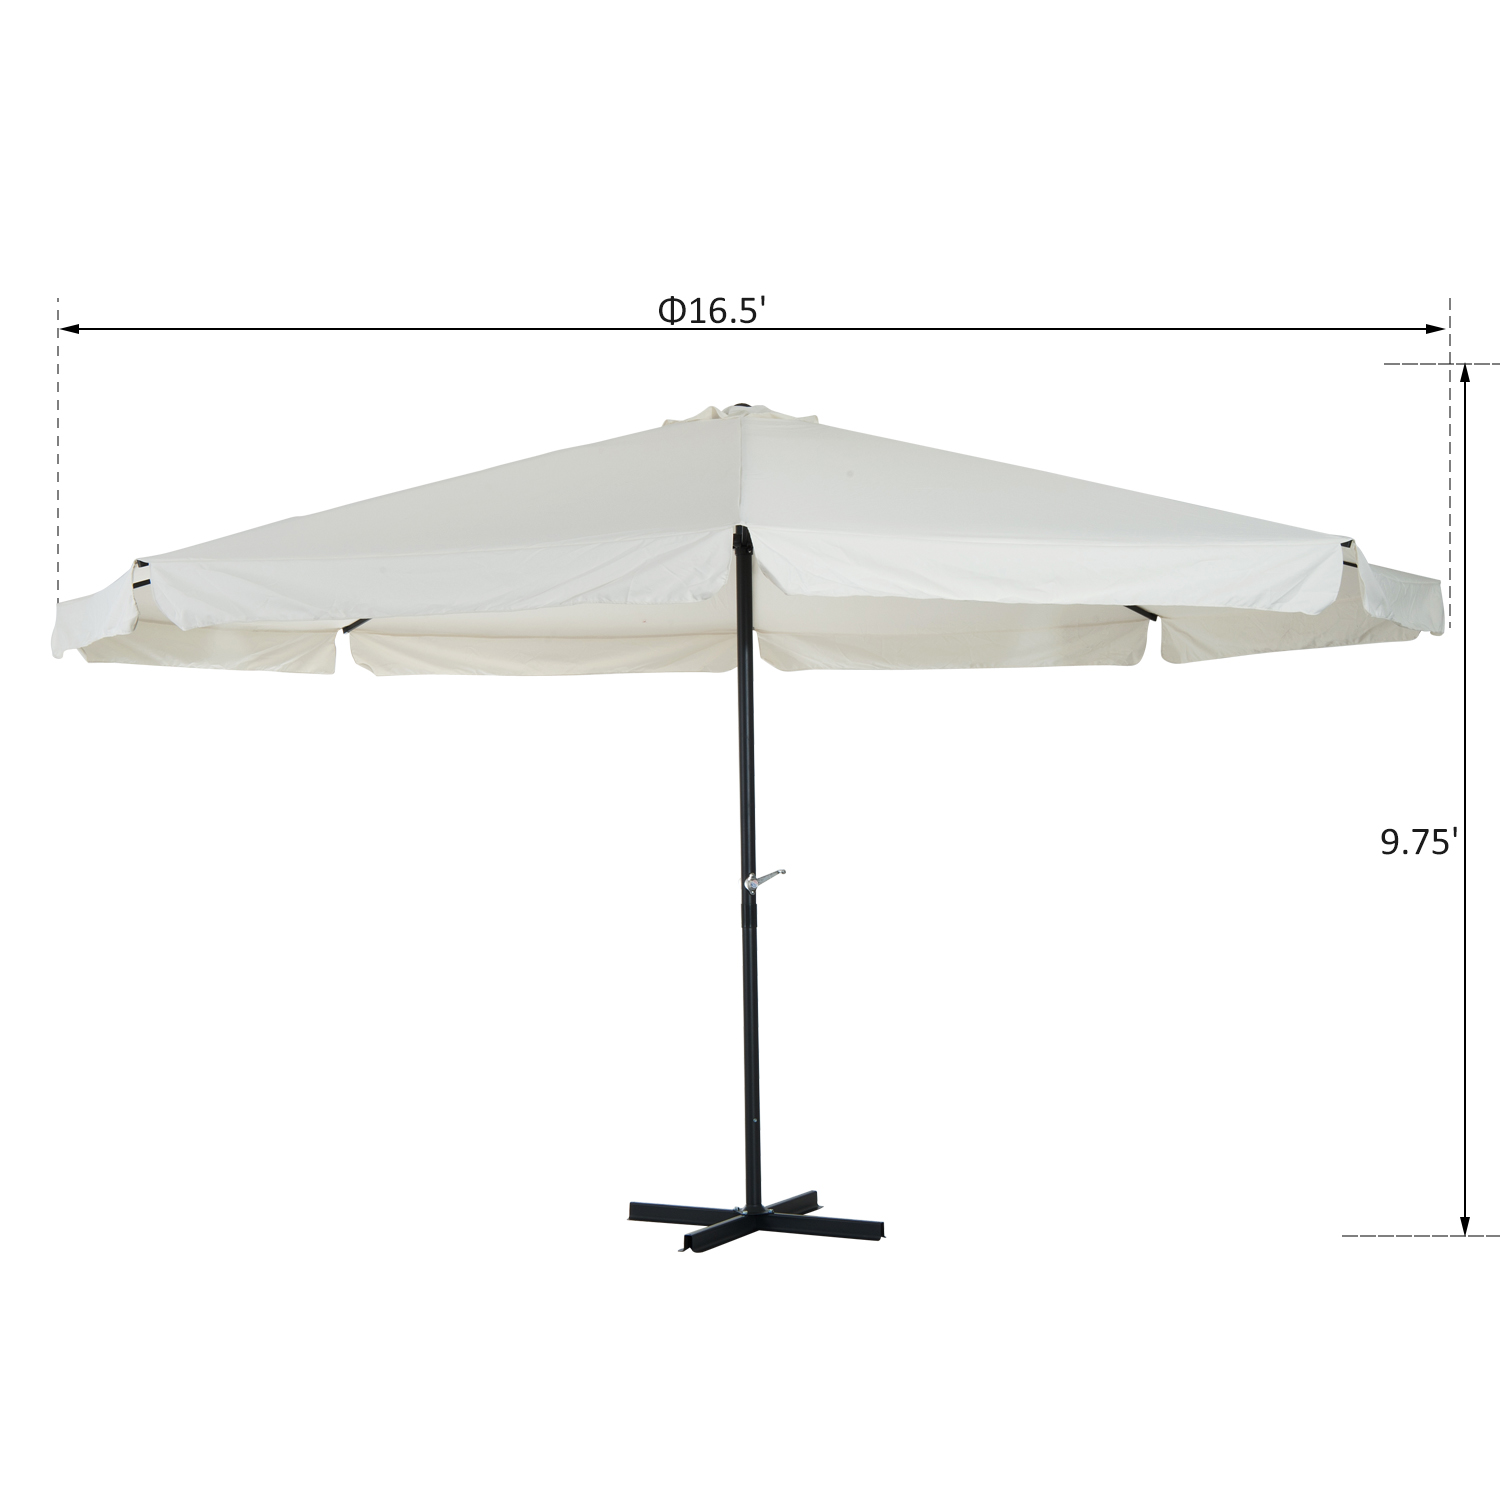 Ordinaire 16Ft Large Size Patio Umbrella Outdoor Market Sunshade